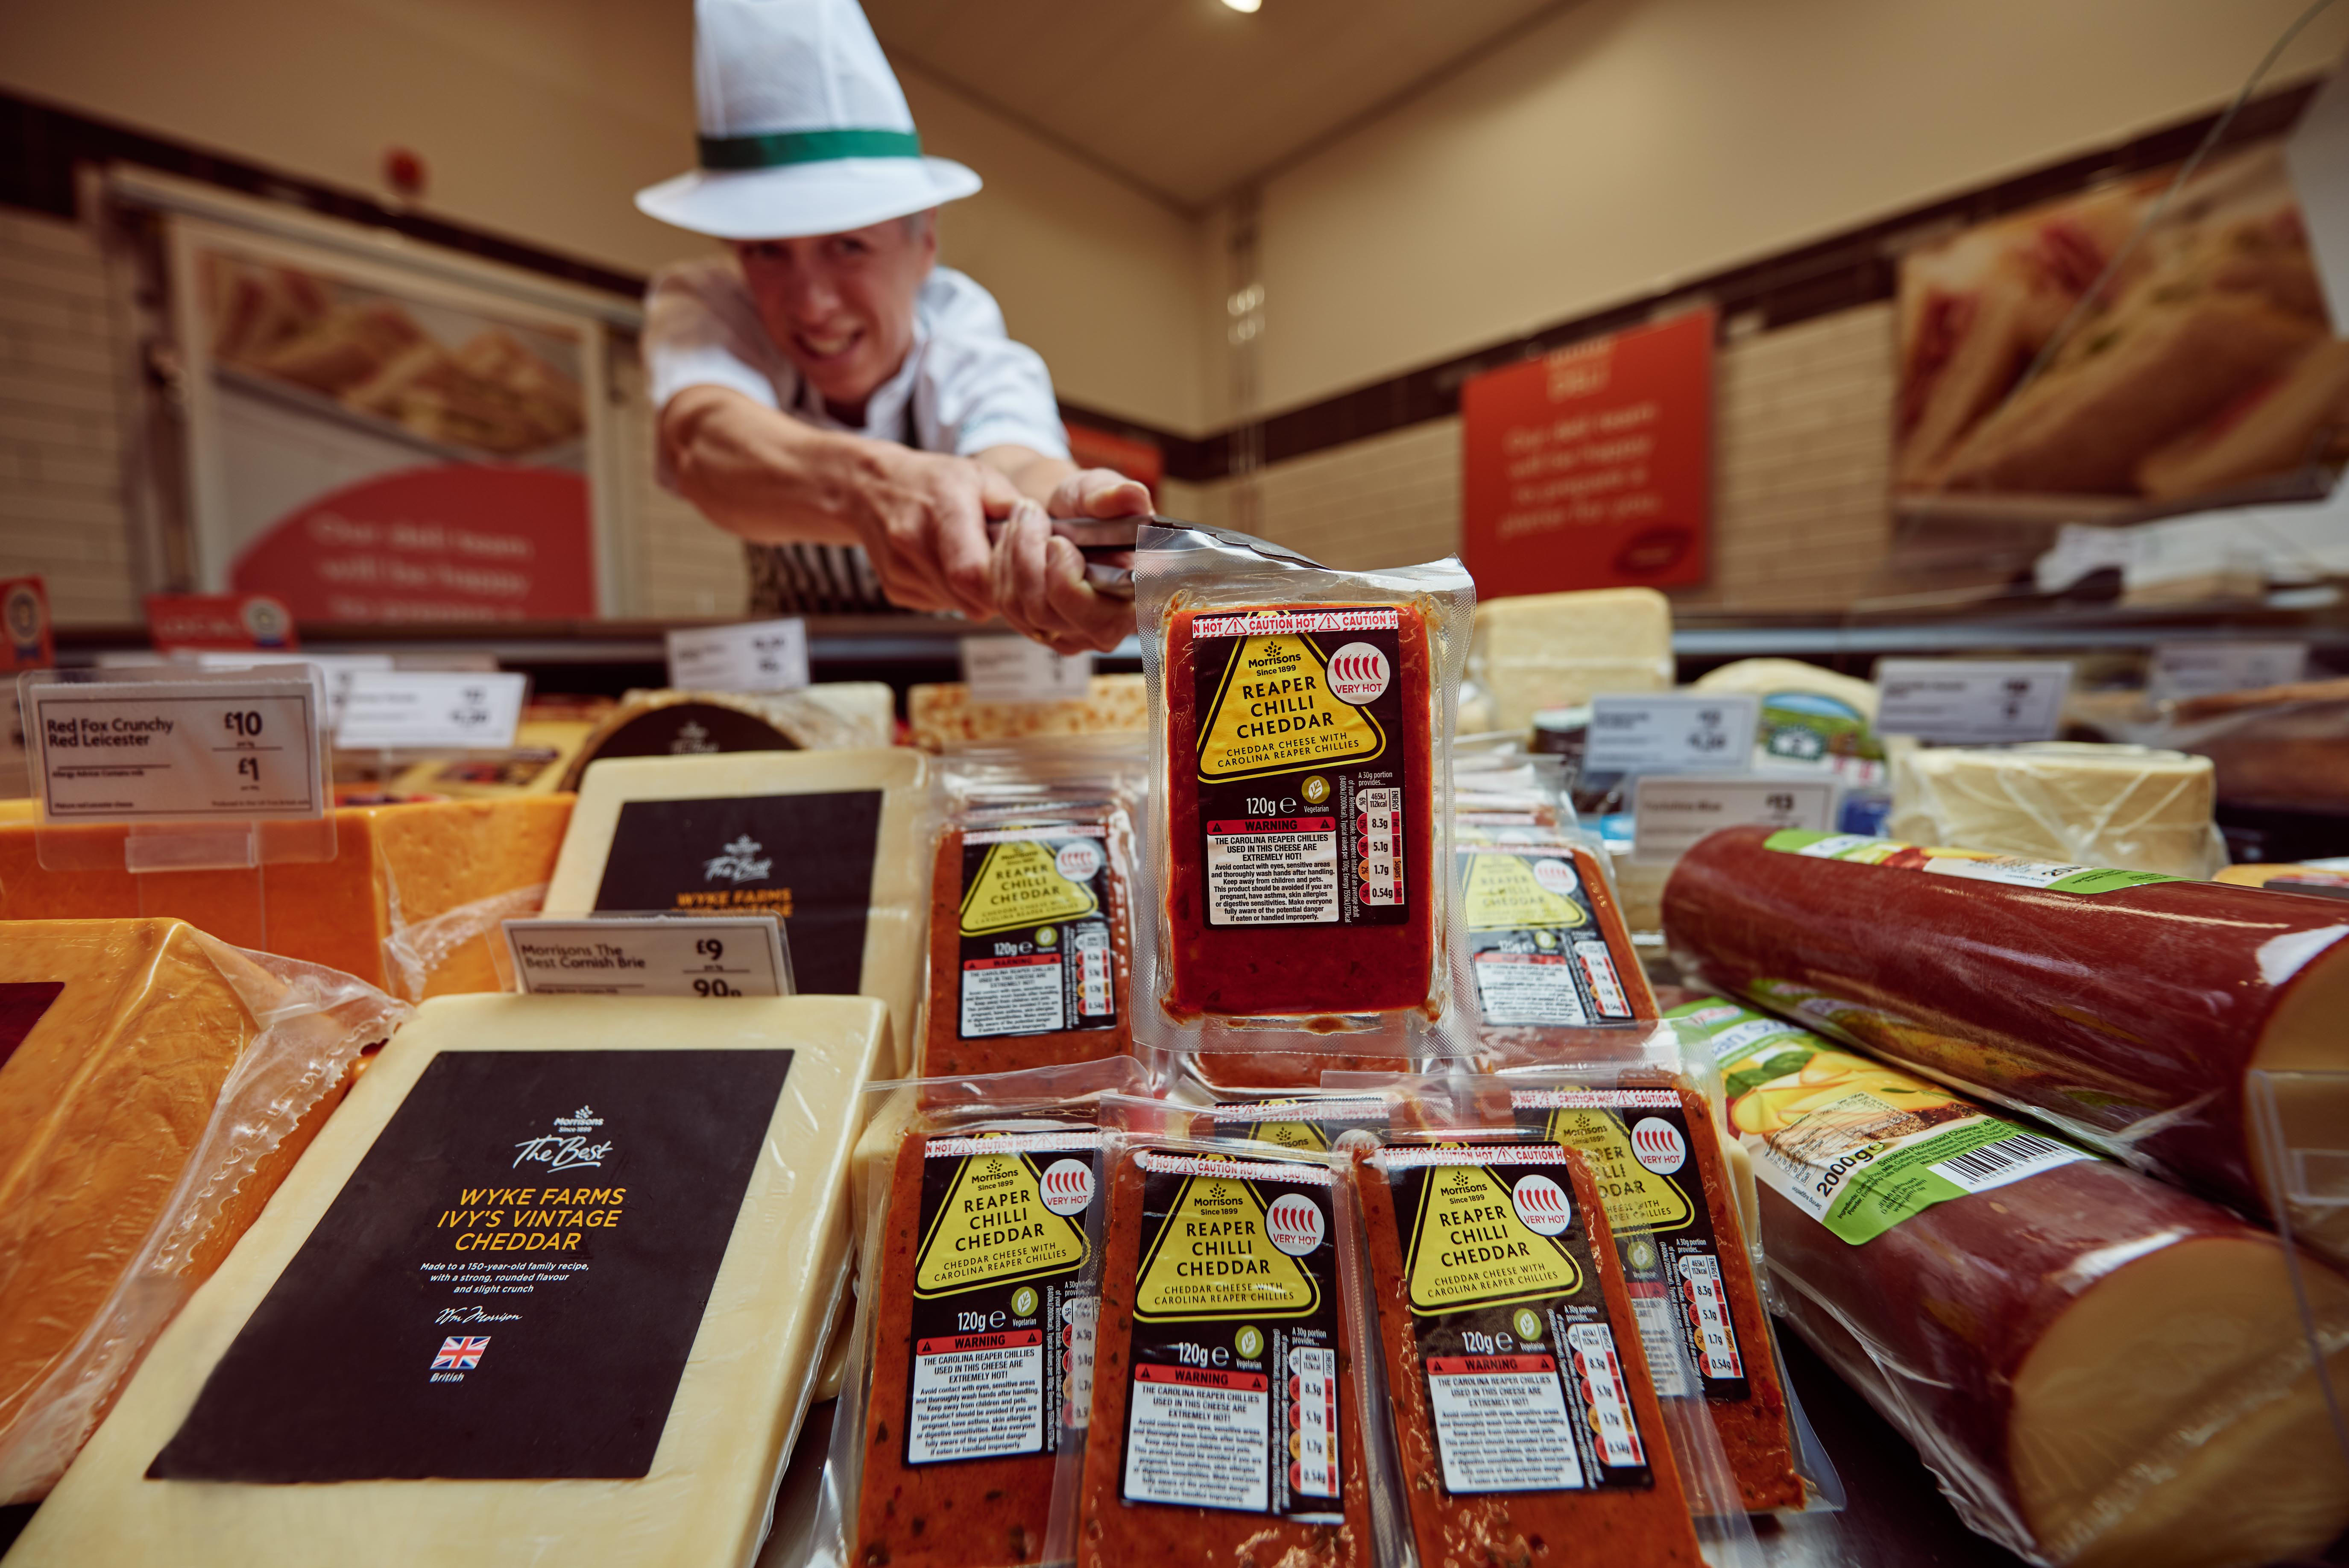 Morrisons Has Just Released 'World's Hottest Chilli Cheese